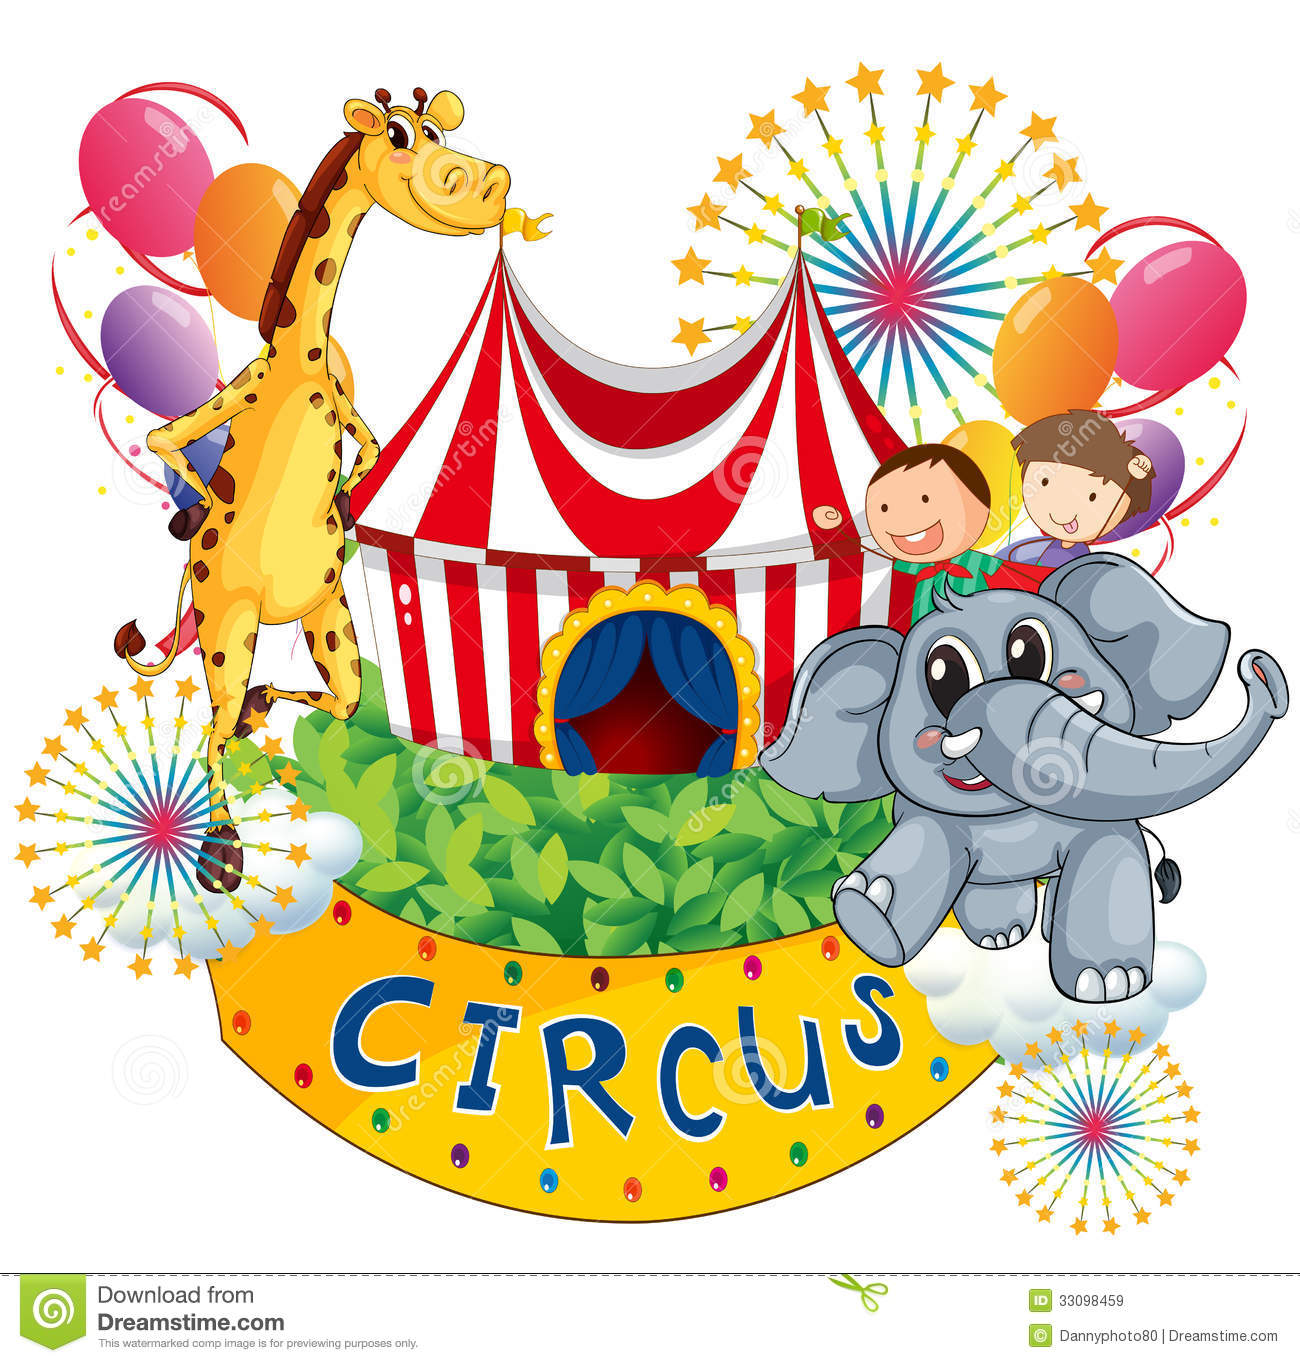 Uncategorized Circus Images For Kids a circus show with kids and animals royalty free stock images photo download kids